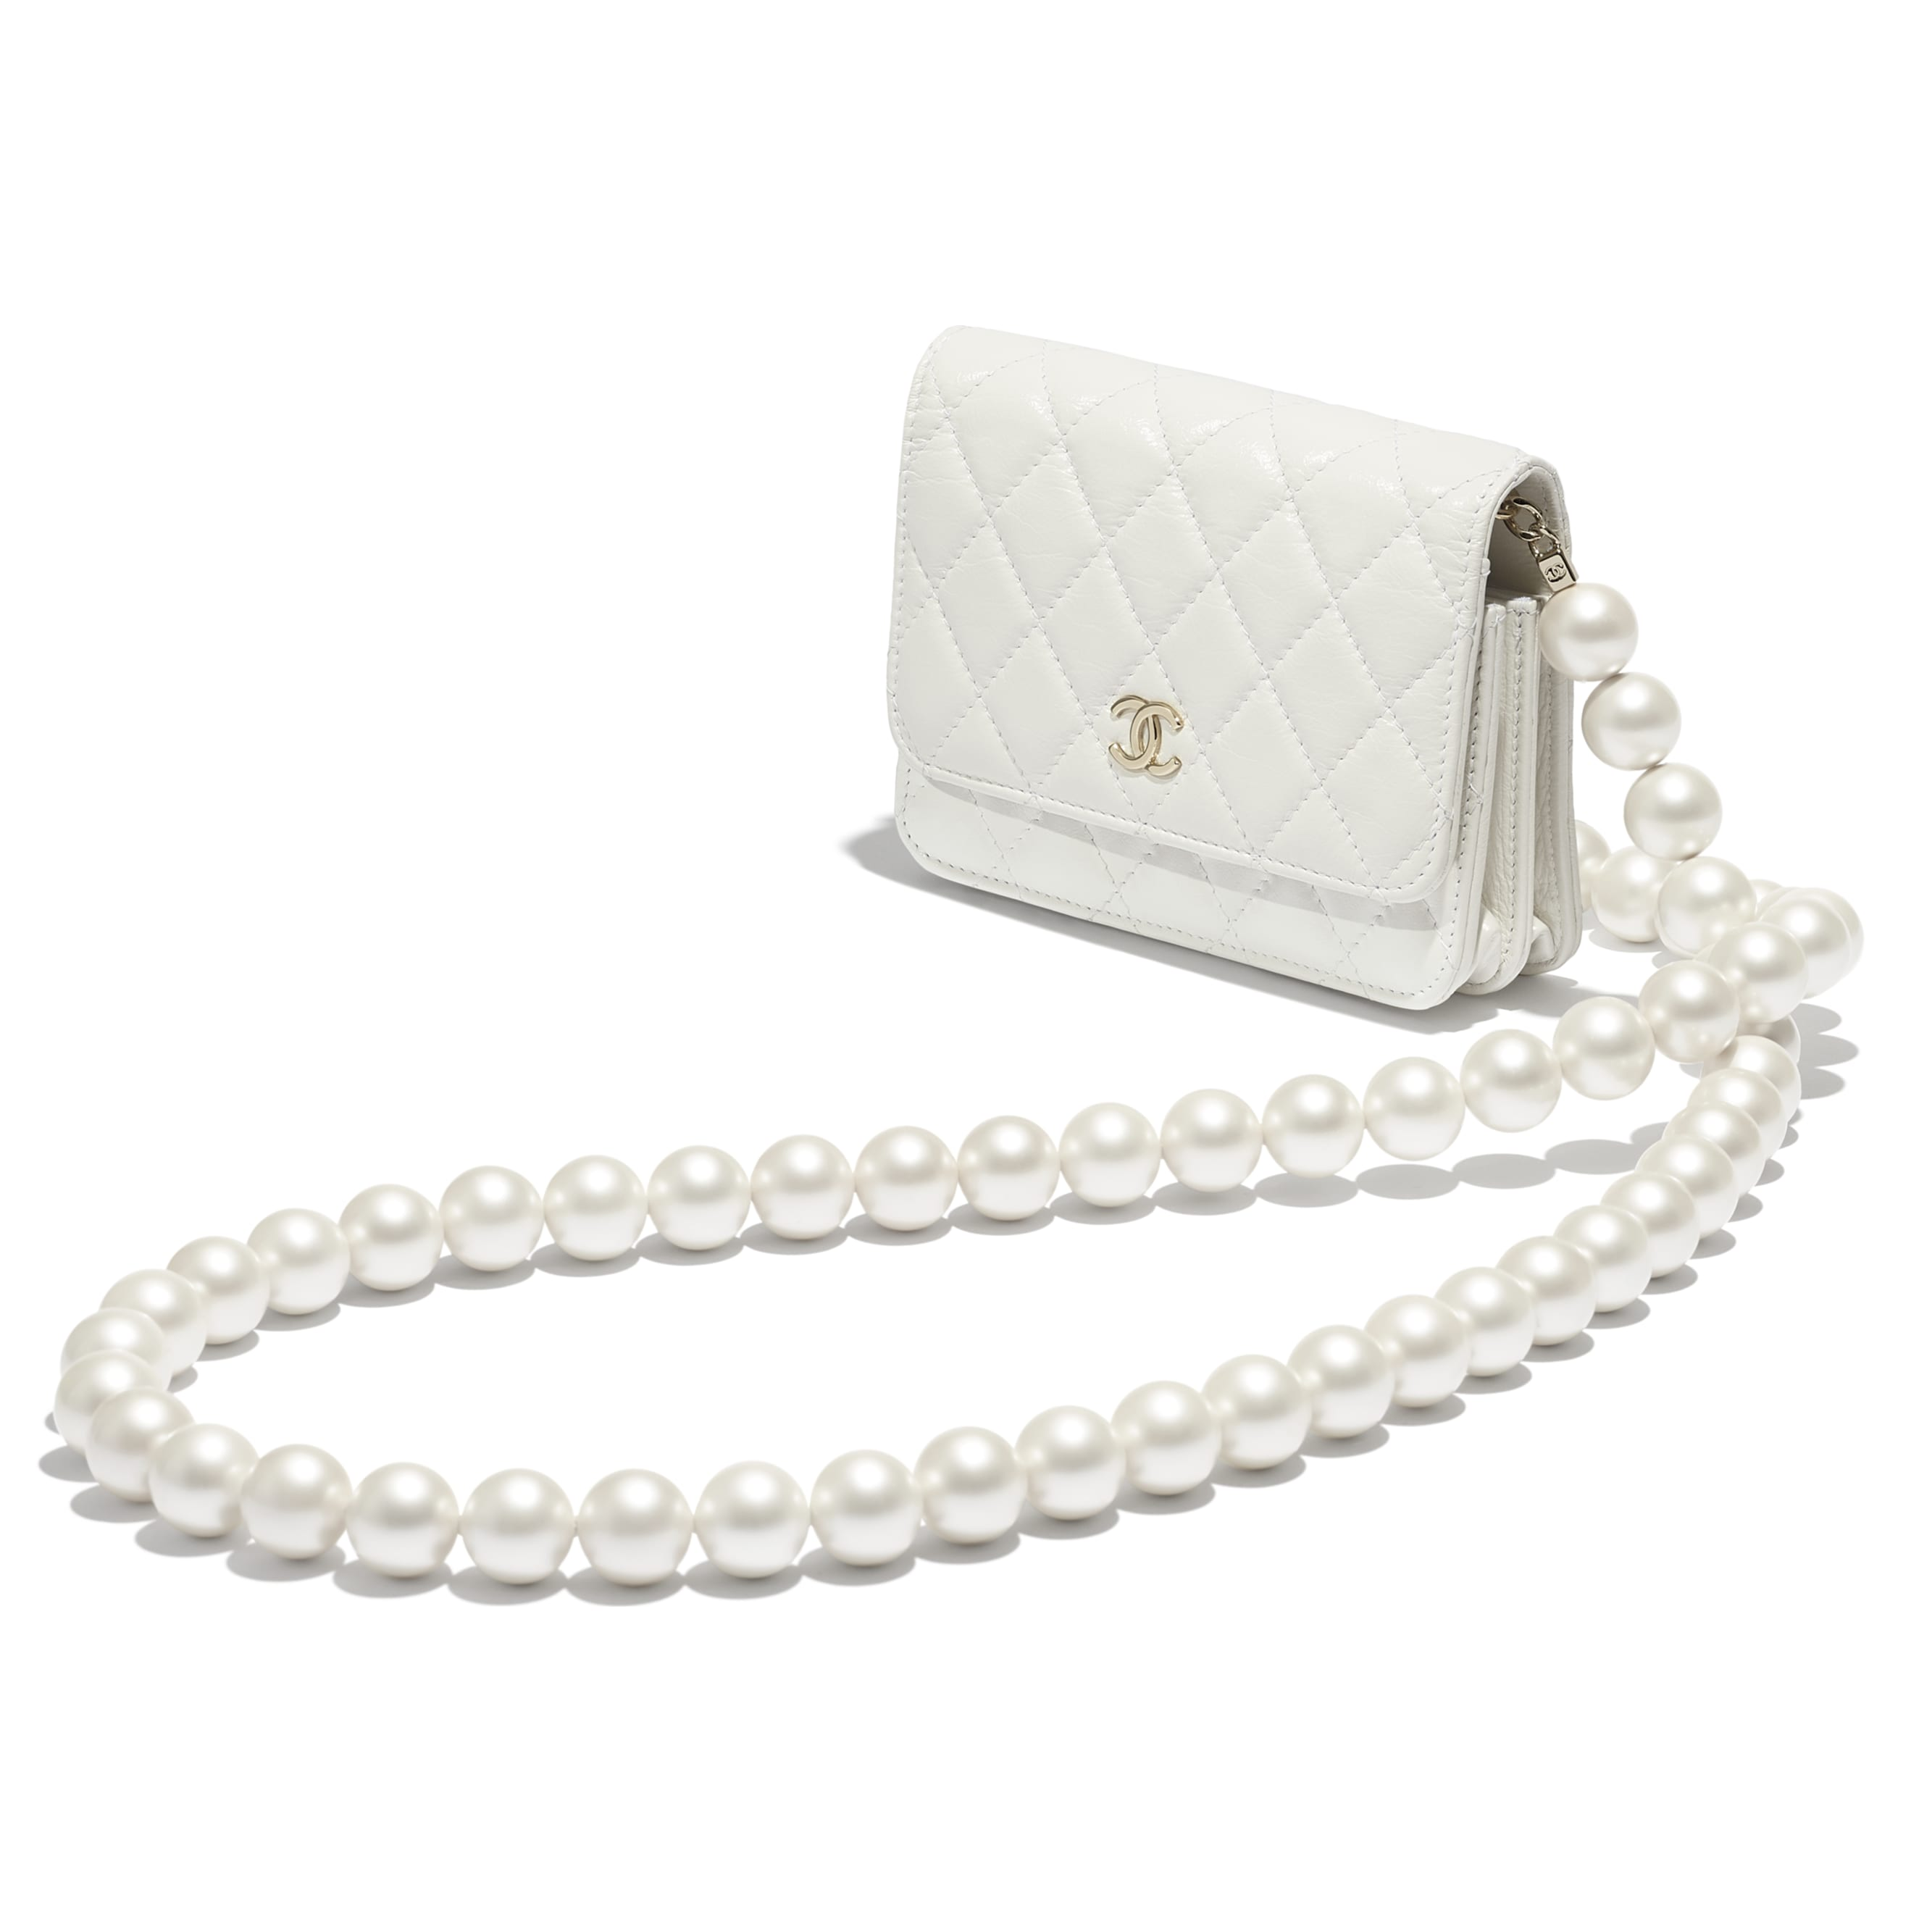 Mini Wallet on Chain - White - Calfskin, Imitation Pearls & Gold-Tone Metal - CHANEL - Other view - see standard sized version